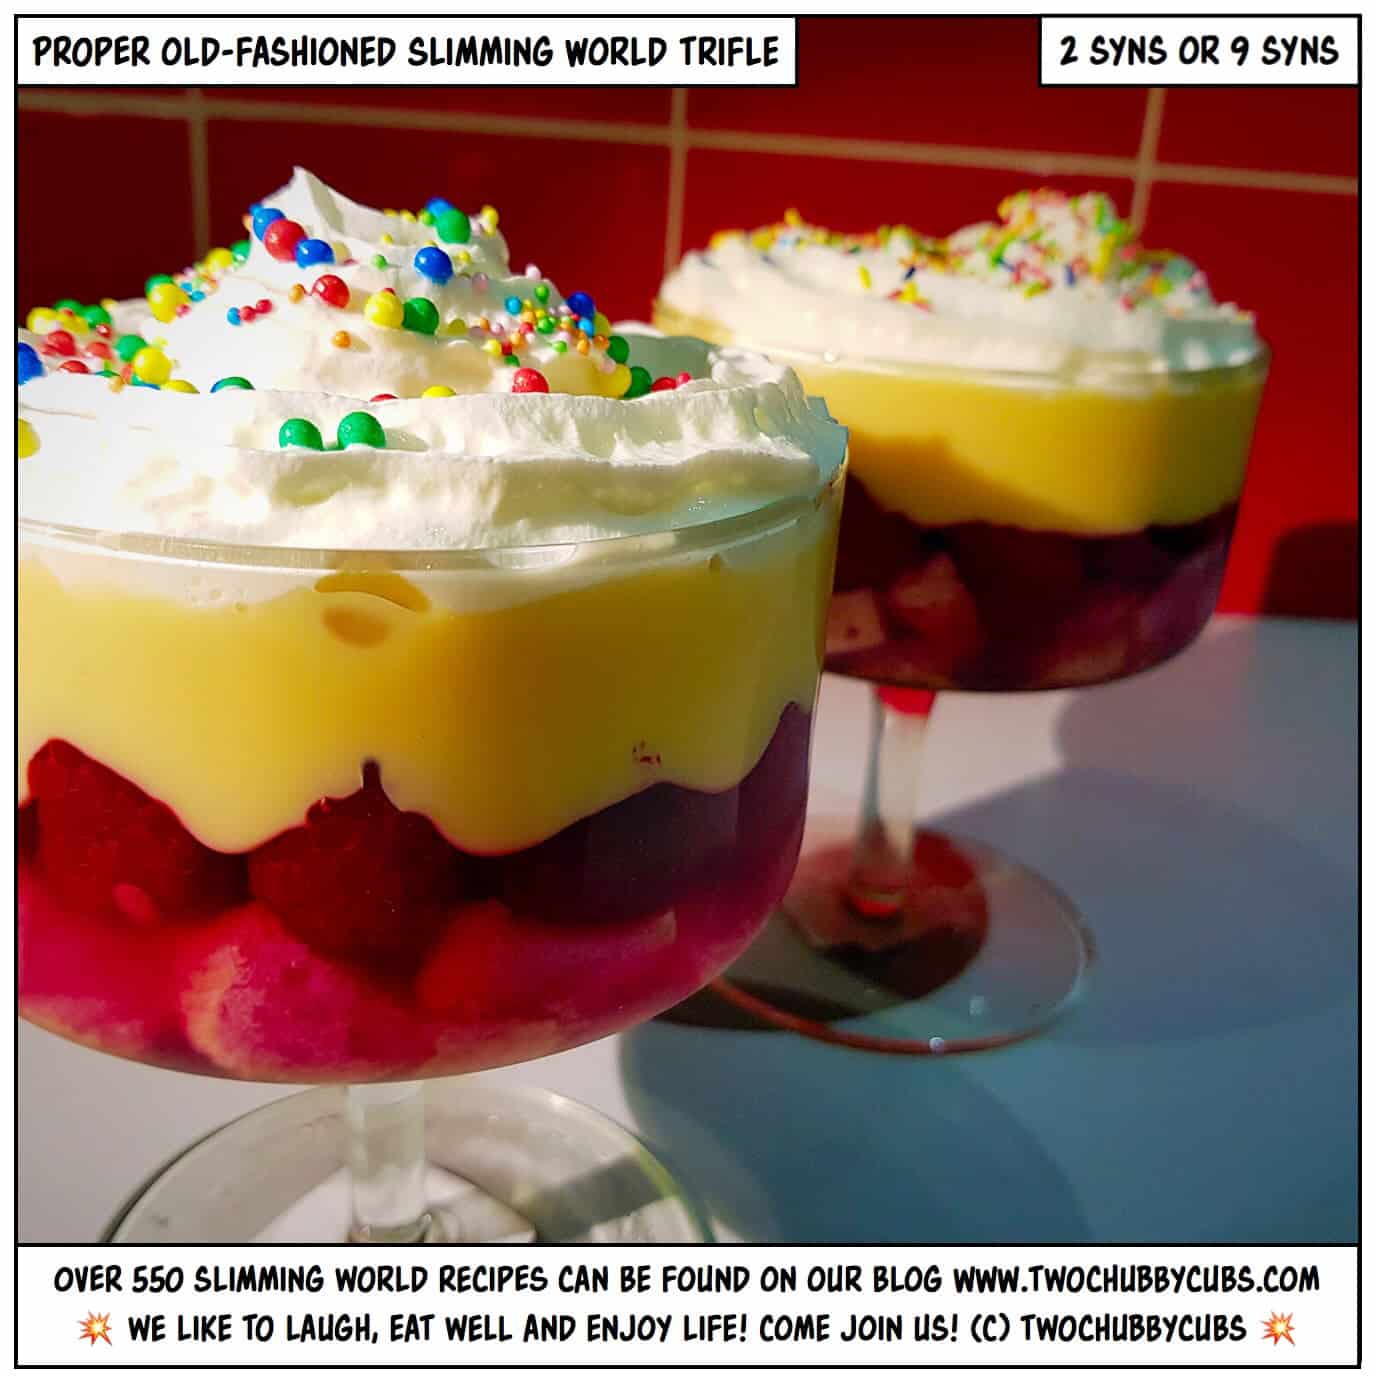 A Proper Slimming World Trifle